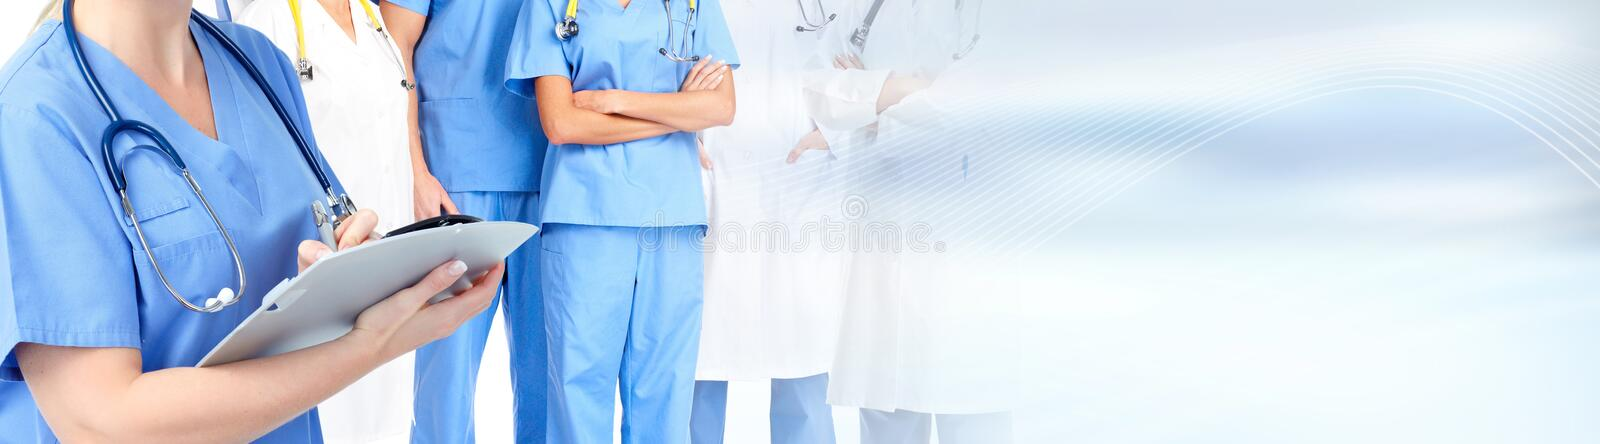 Doctor hands. Medical doctor pharmacist hands. Health care clinic background royalty free stock photography